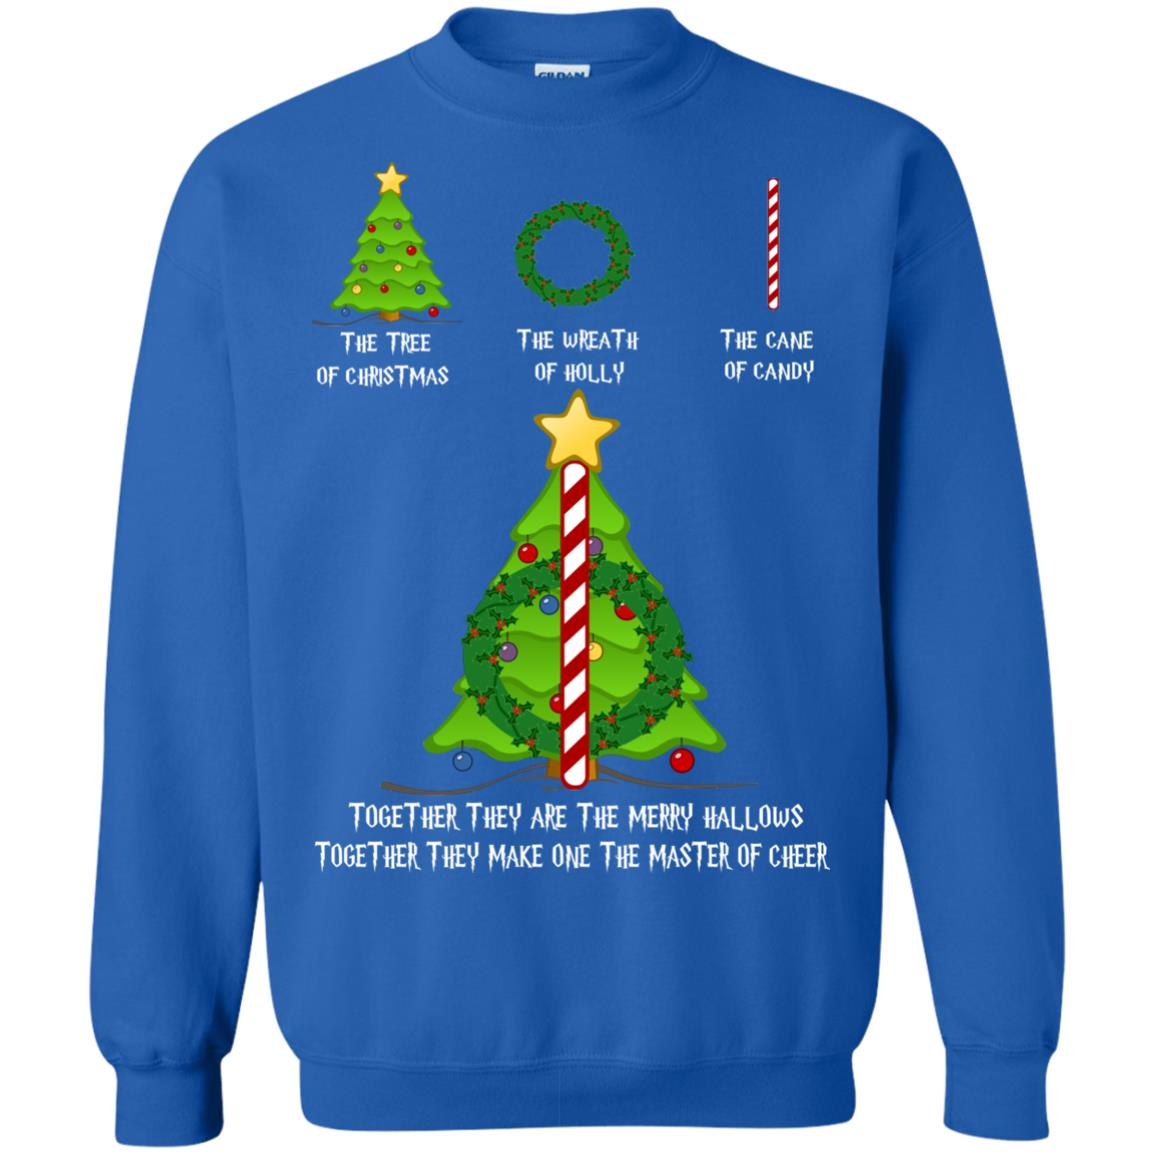 image 371px Harry Potter: The Tree Of Christmas The Wreath of Holly The Cane Of Candy Sweater